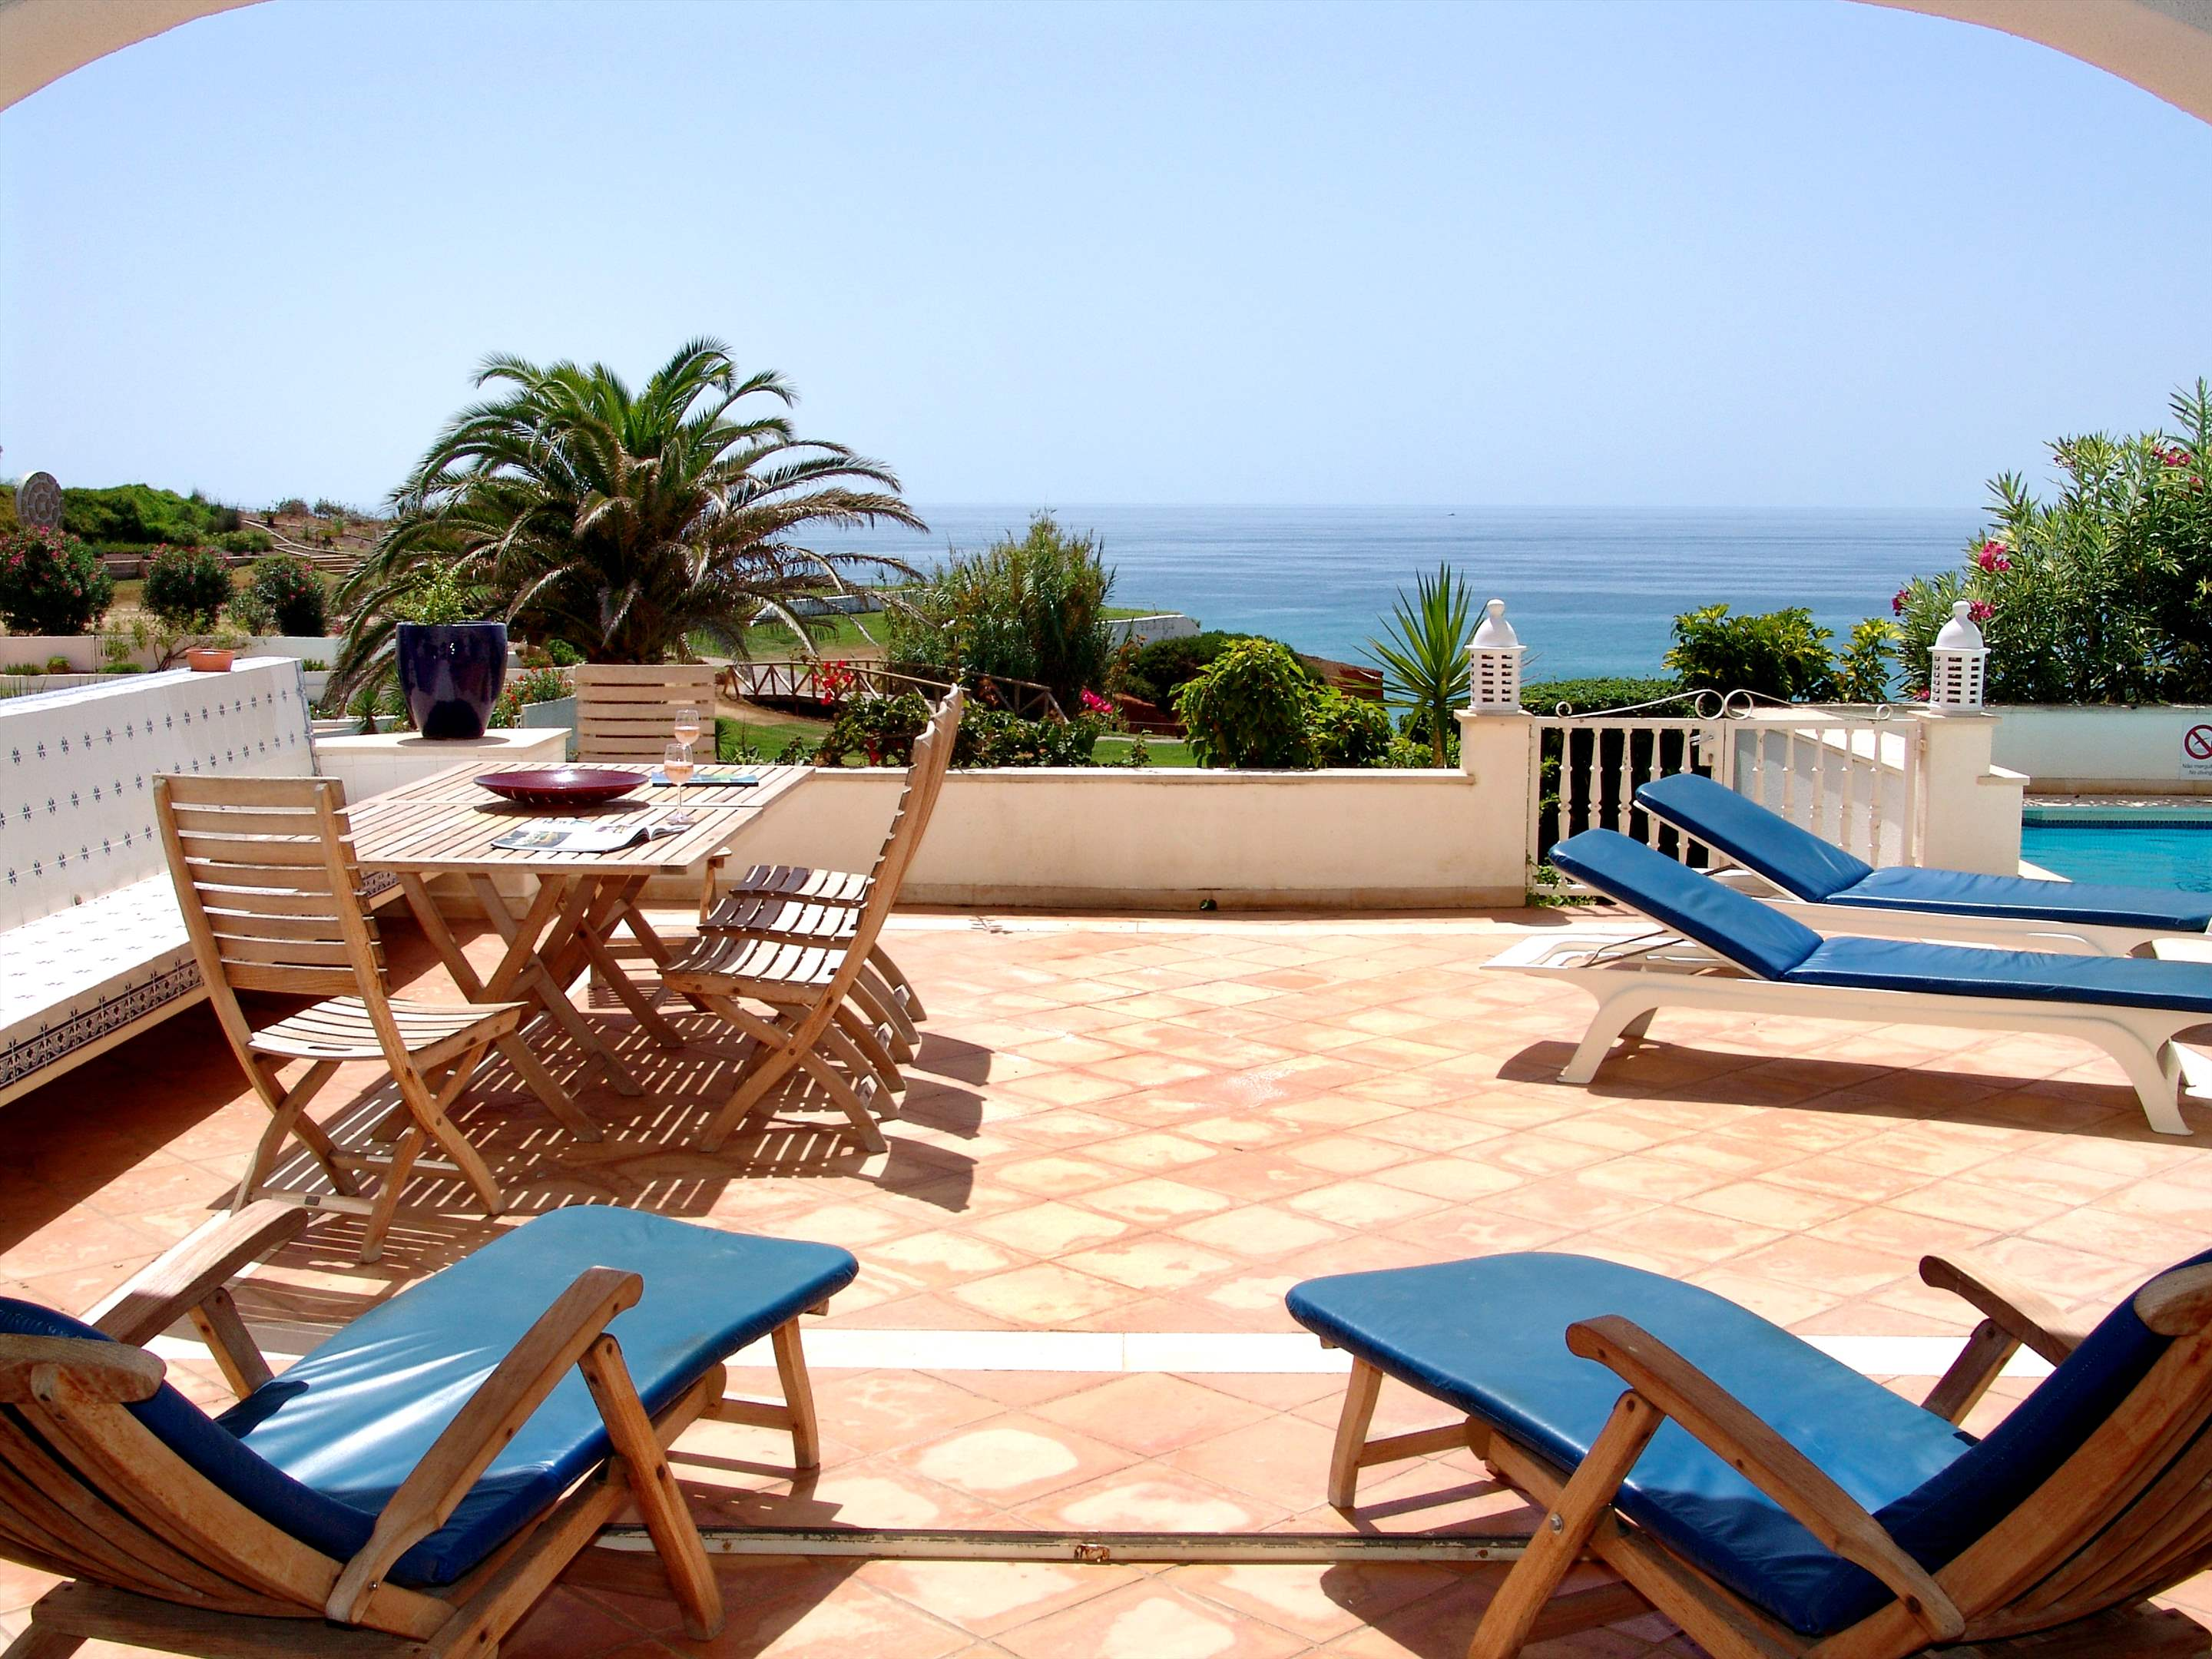 Villas Louisa, 3 bedroom, 3 bedroom villa in Vale do Lobo, Algarve Photo #24